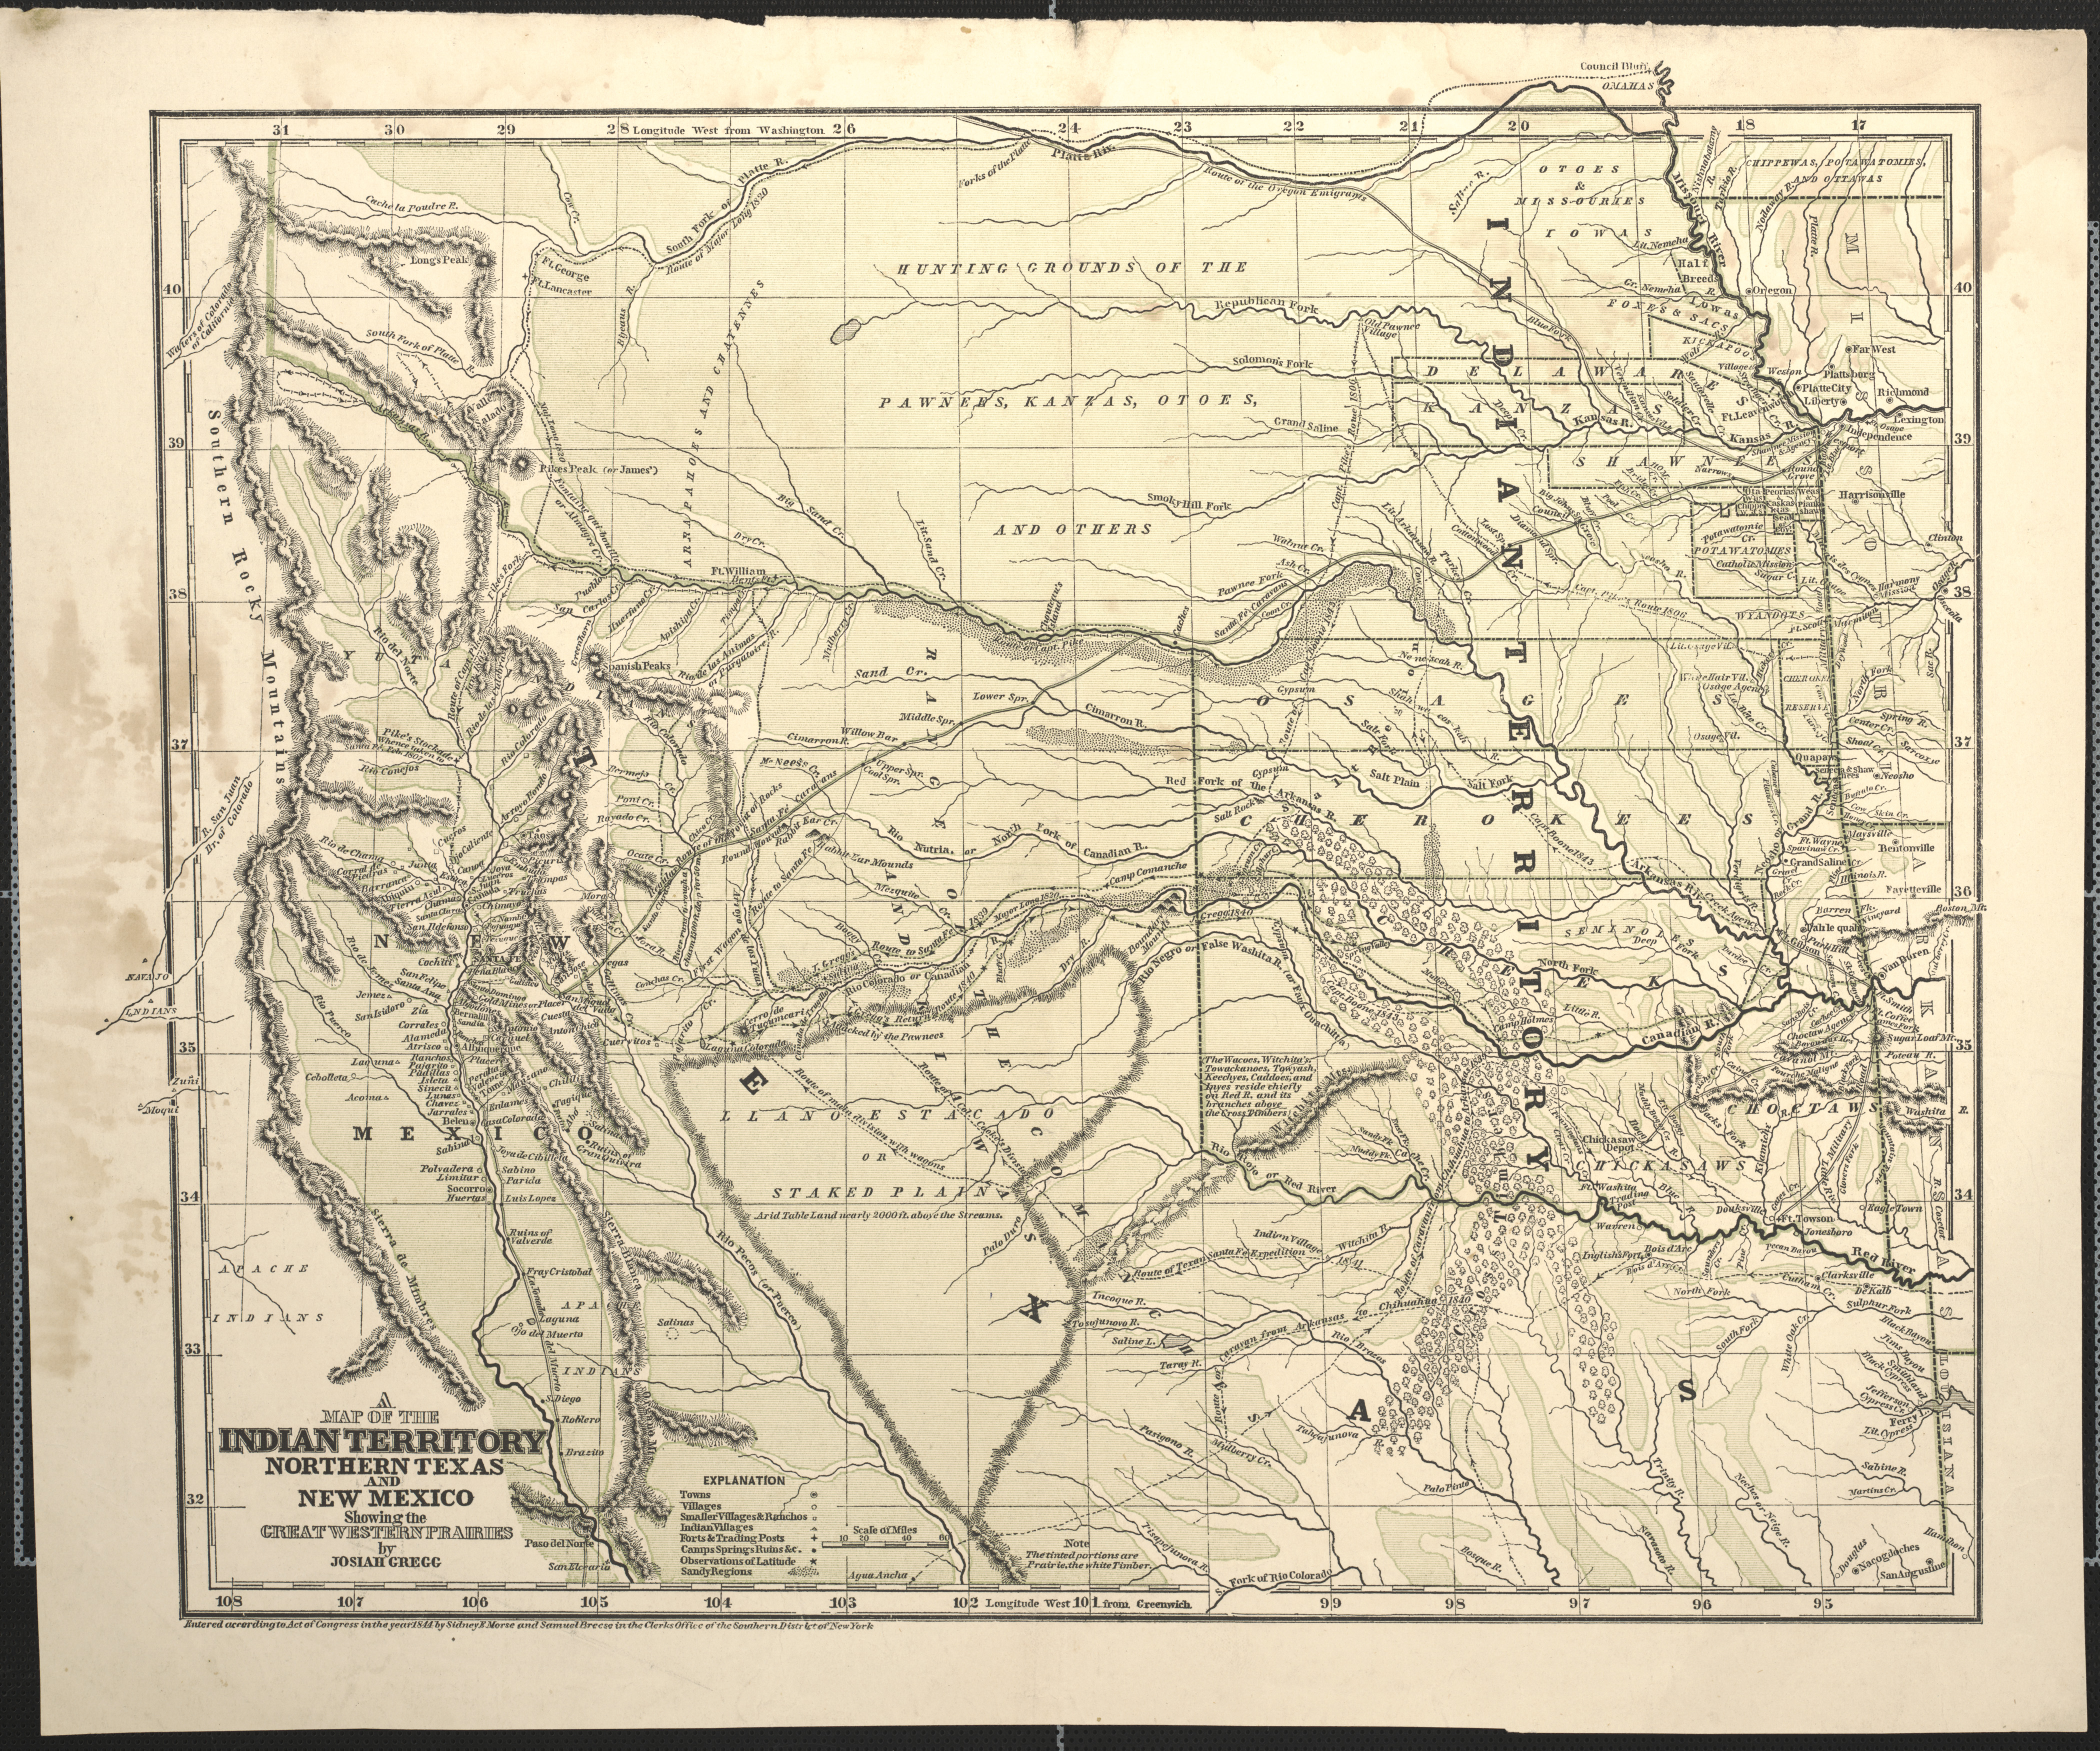 A Map Of The Indian Territory Northern Texas And New Mexico Showing The Great Western Prairies